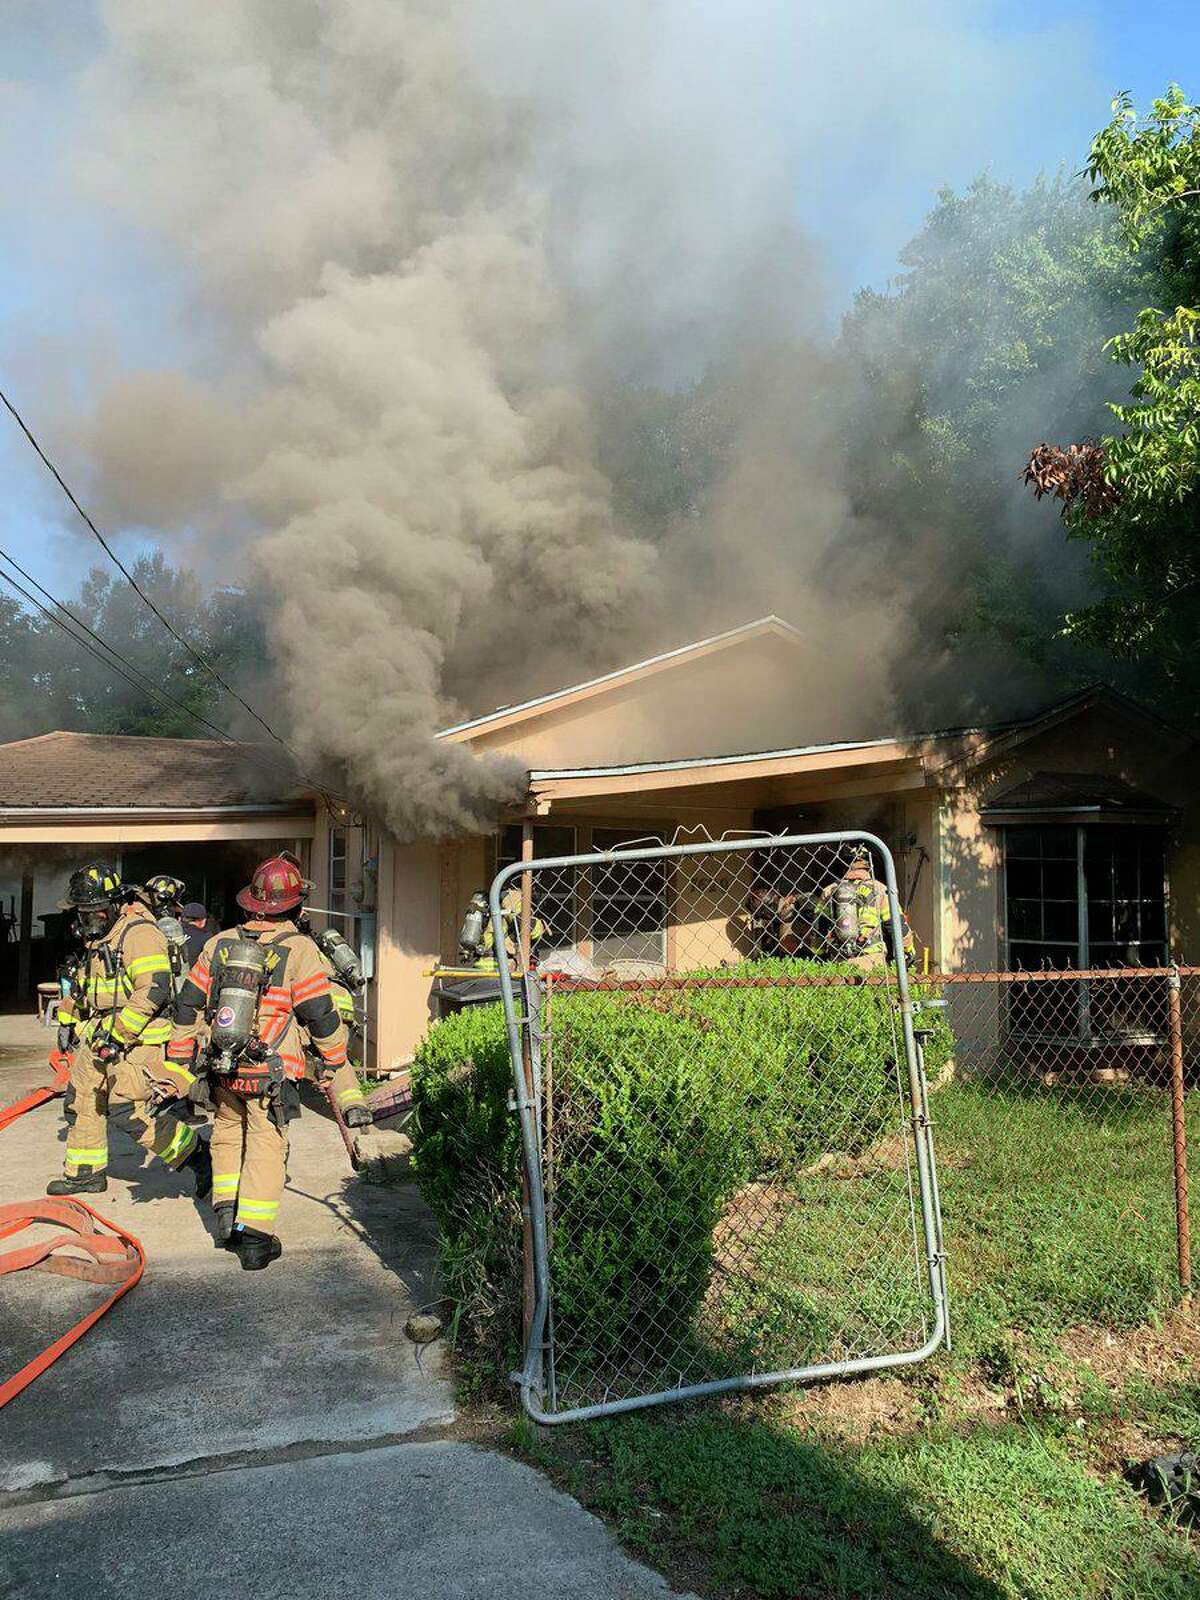 Authorities discovered a dead man in the aftermath of a fire at 7629 Pointer Street on Aug. 16, 2021.